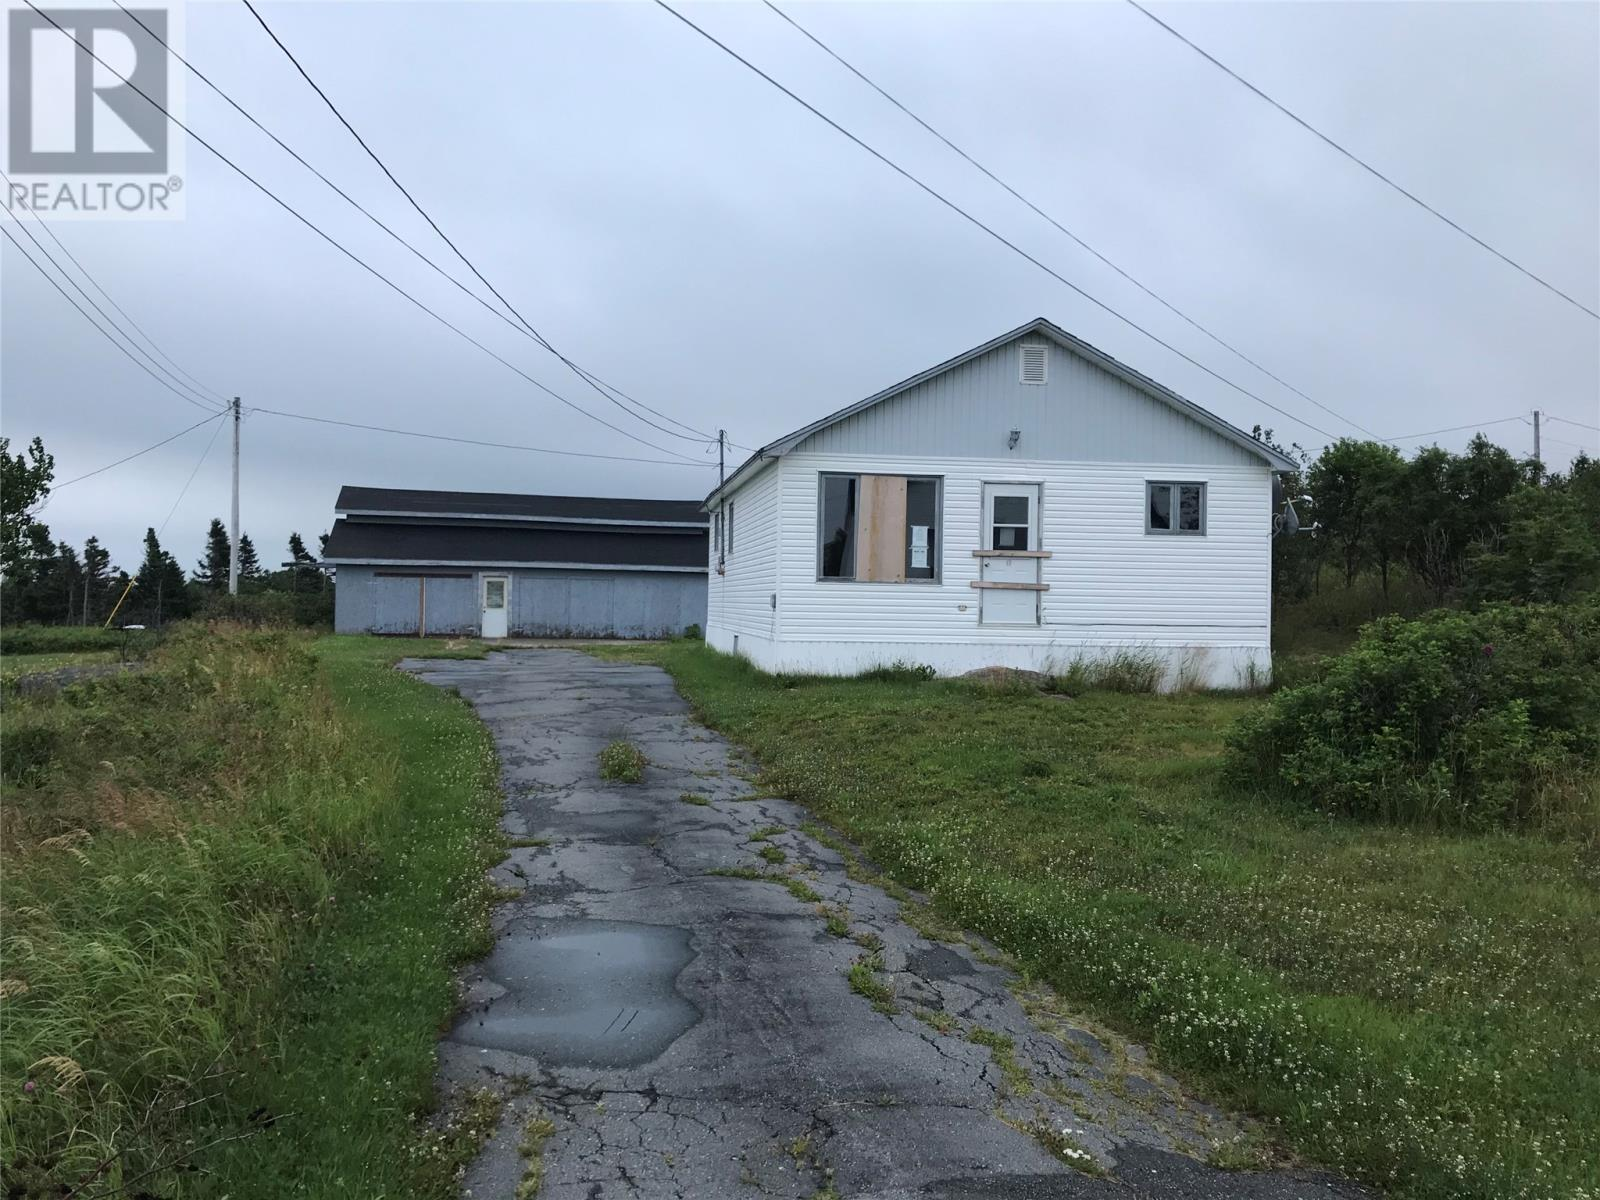 Removed: 17 Burts Drive, Musgrave Harbour, NL - Removed on 2018-12-04 04:18:10